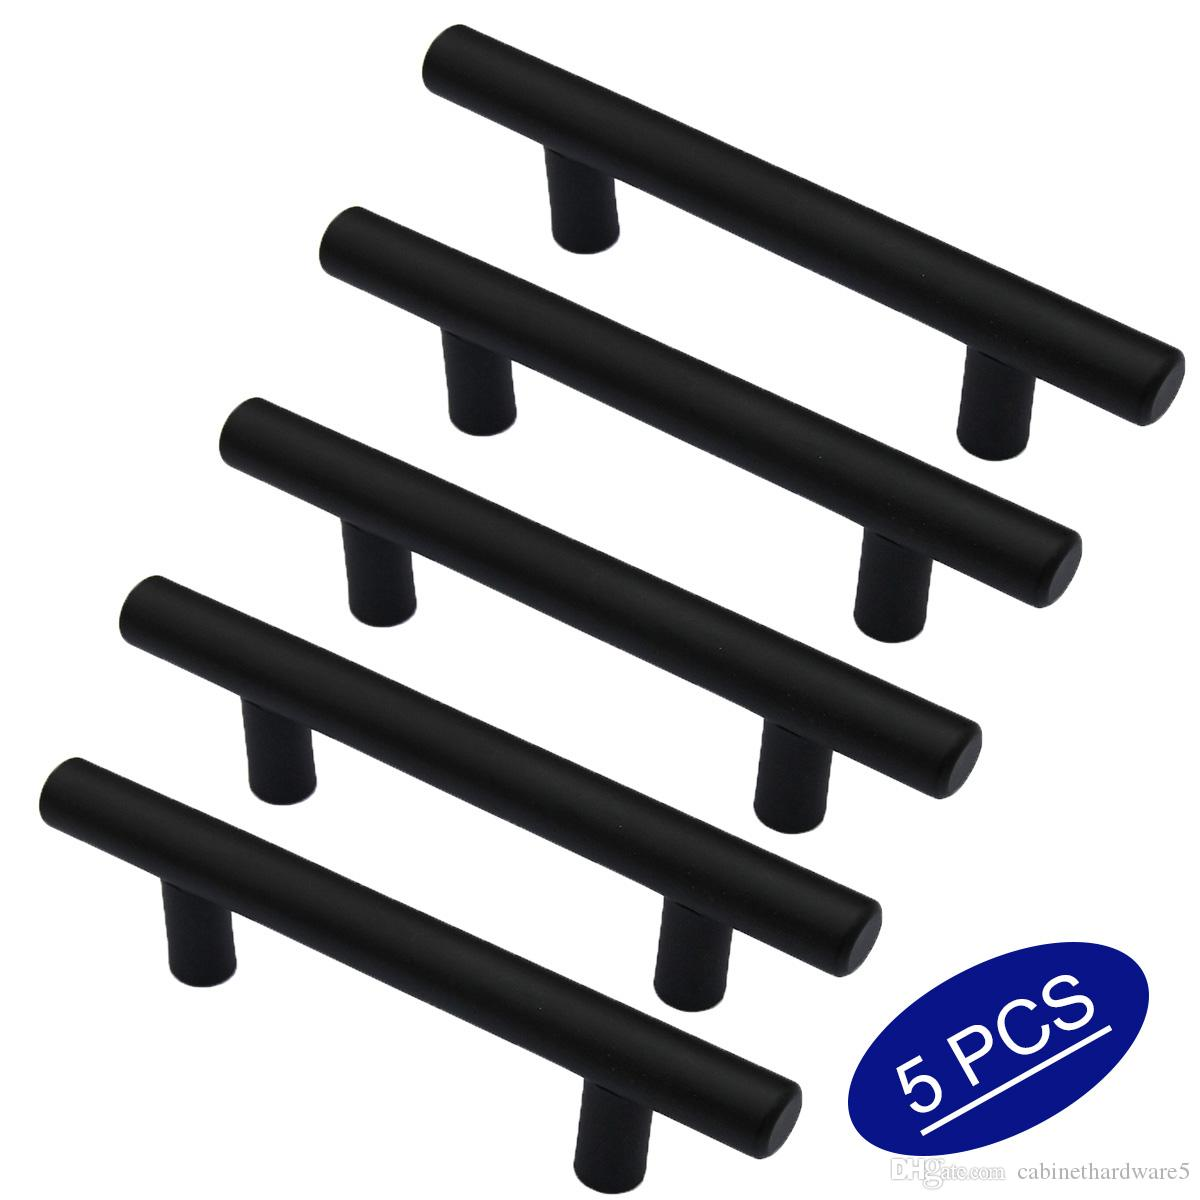 5 Pieces Flat Black Kitchen Furniture Cabinet Pull Handles 3 inch 76mm hole Spacing, Round Tube T Bar Cupboard Closet Door Drawer Knobs